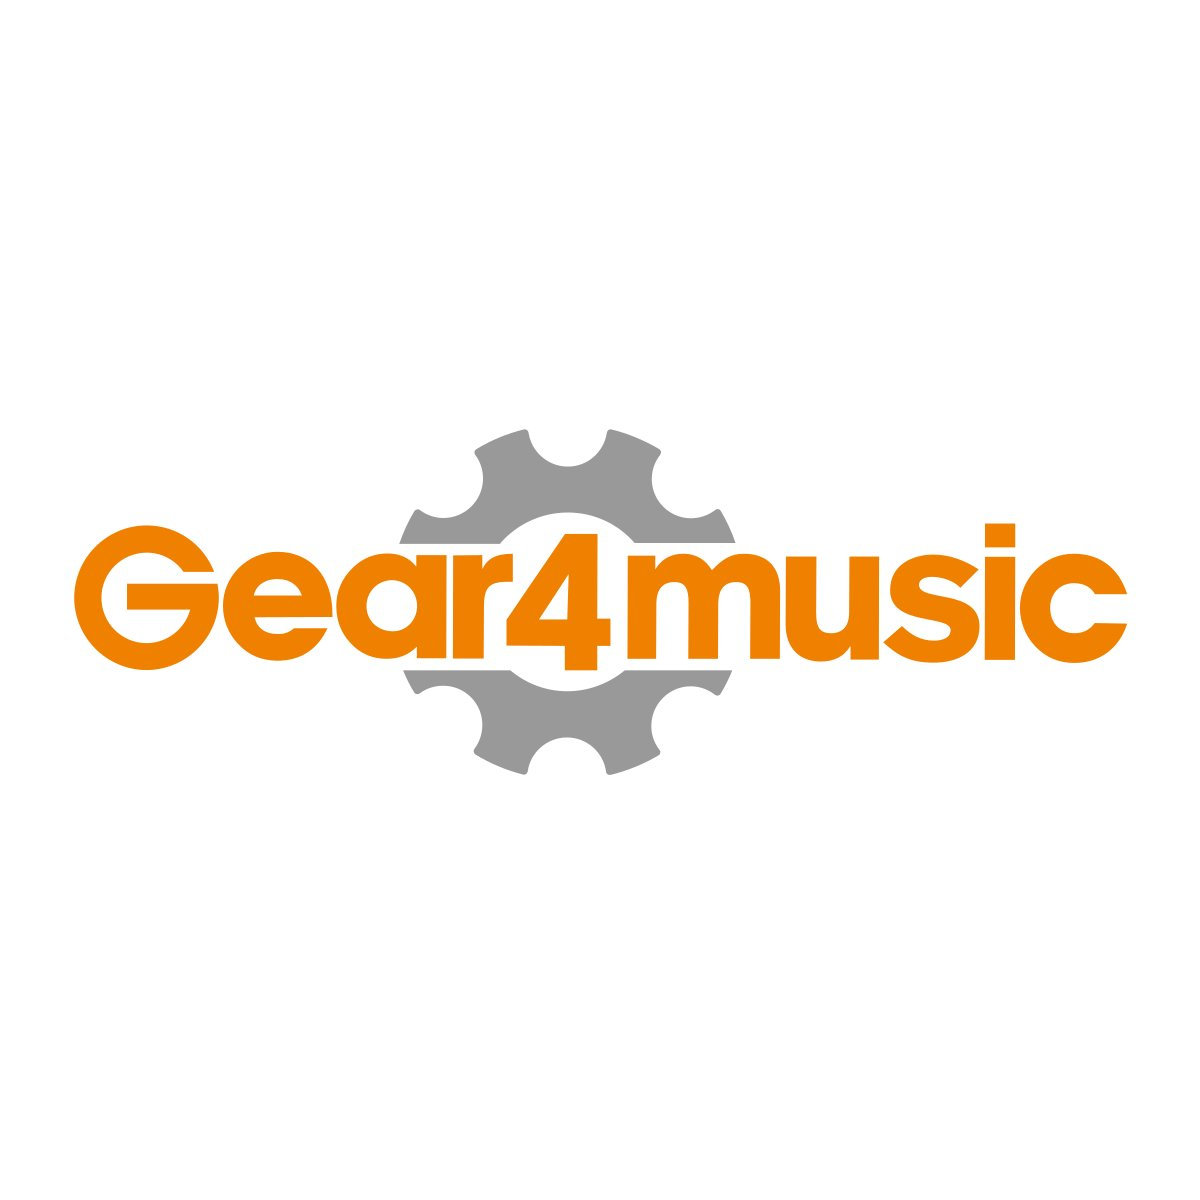 Image of Lightweight Cymbal Case with Wheels by Gear4music